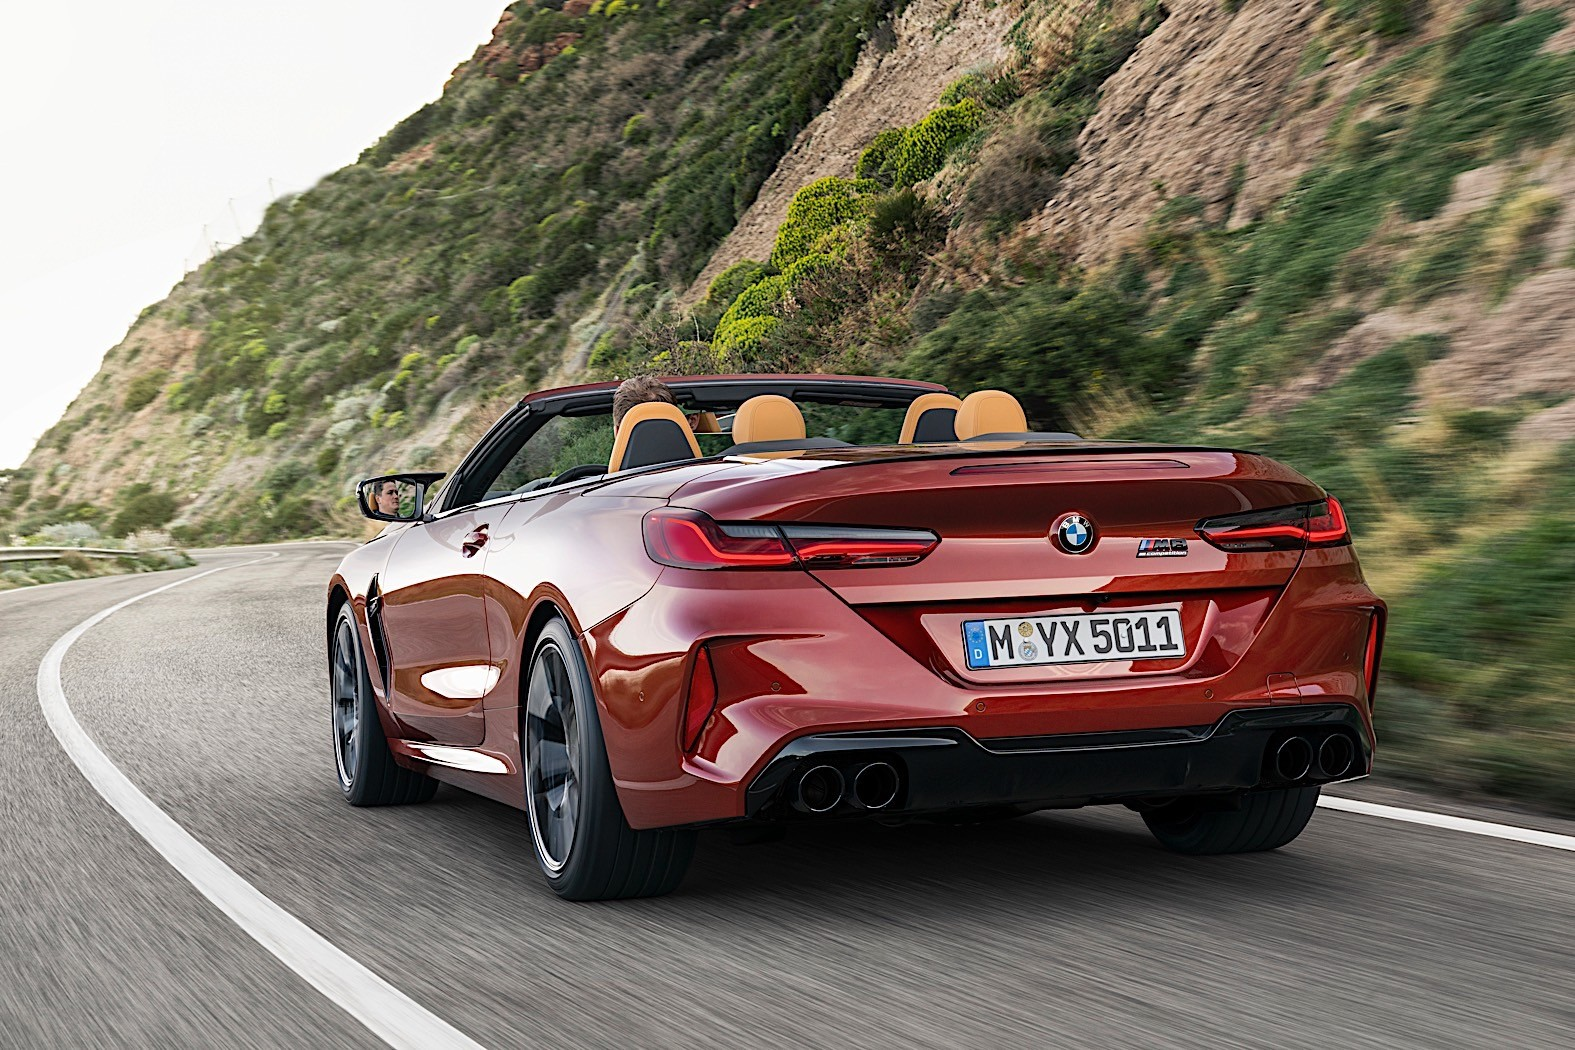 BMW's M might build a standalone supercar